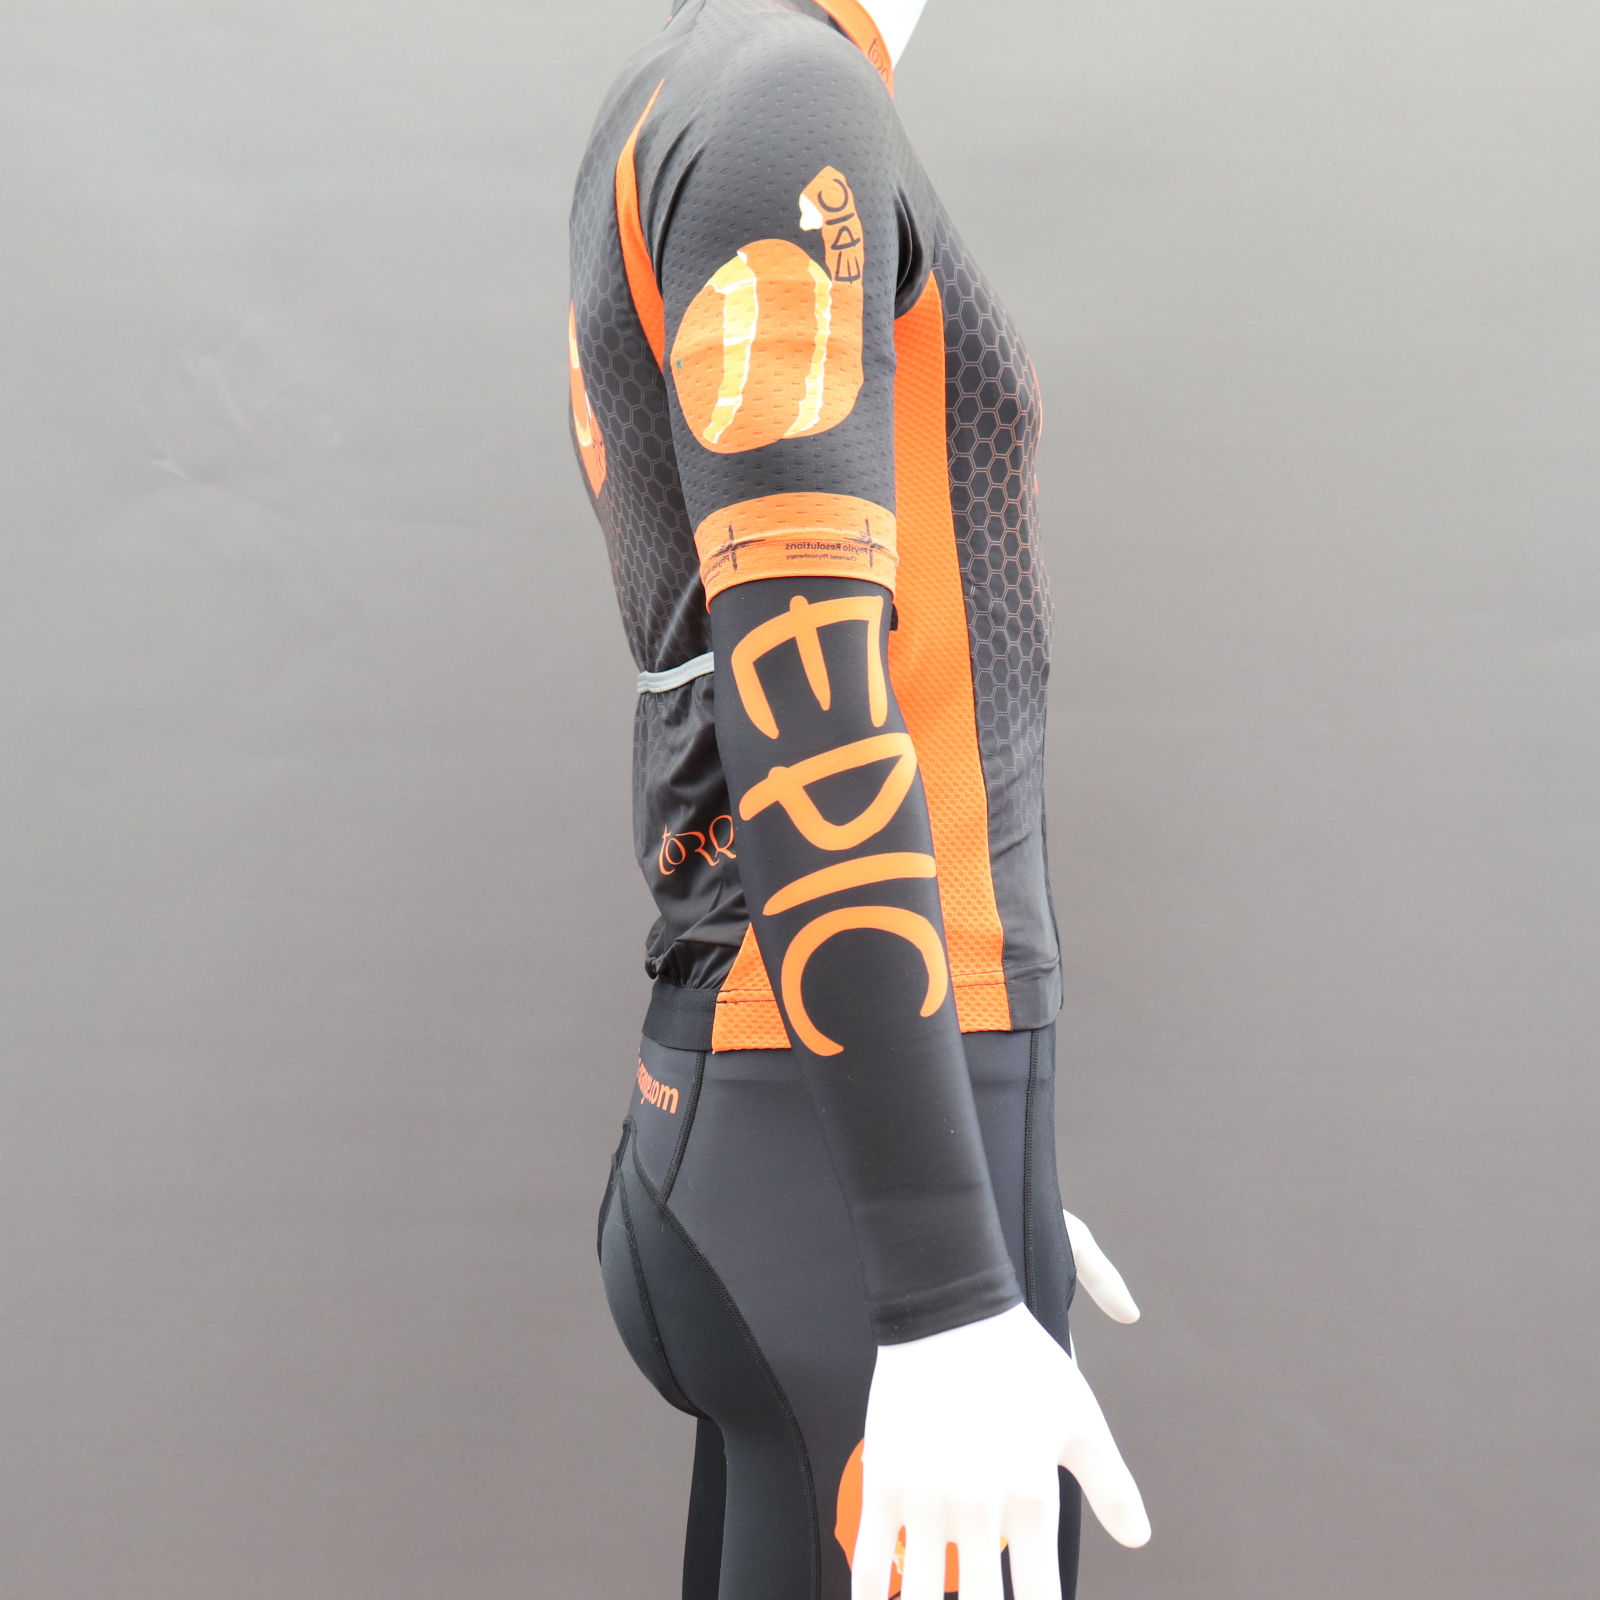 Custom Printed Roubaix Cycle Armwarmers